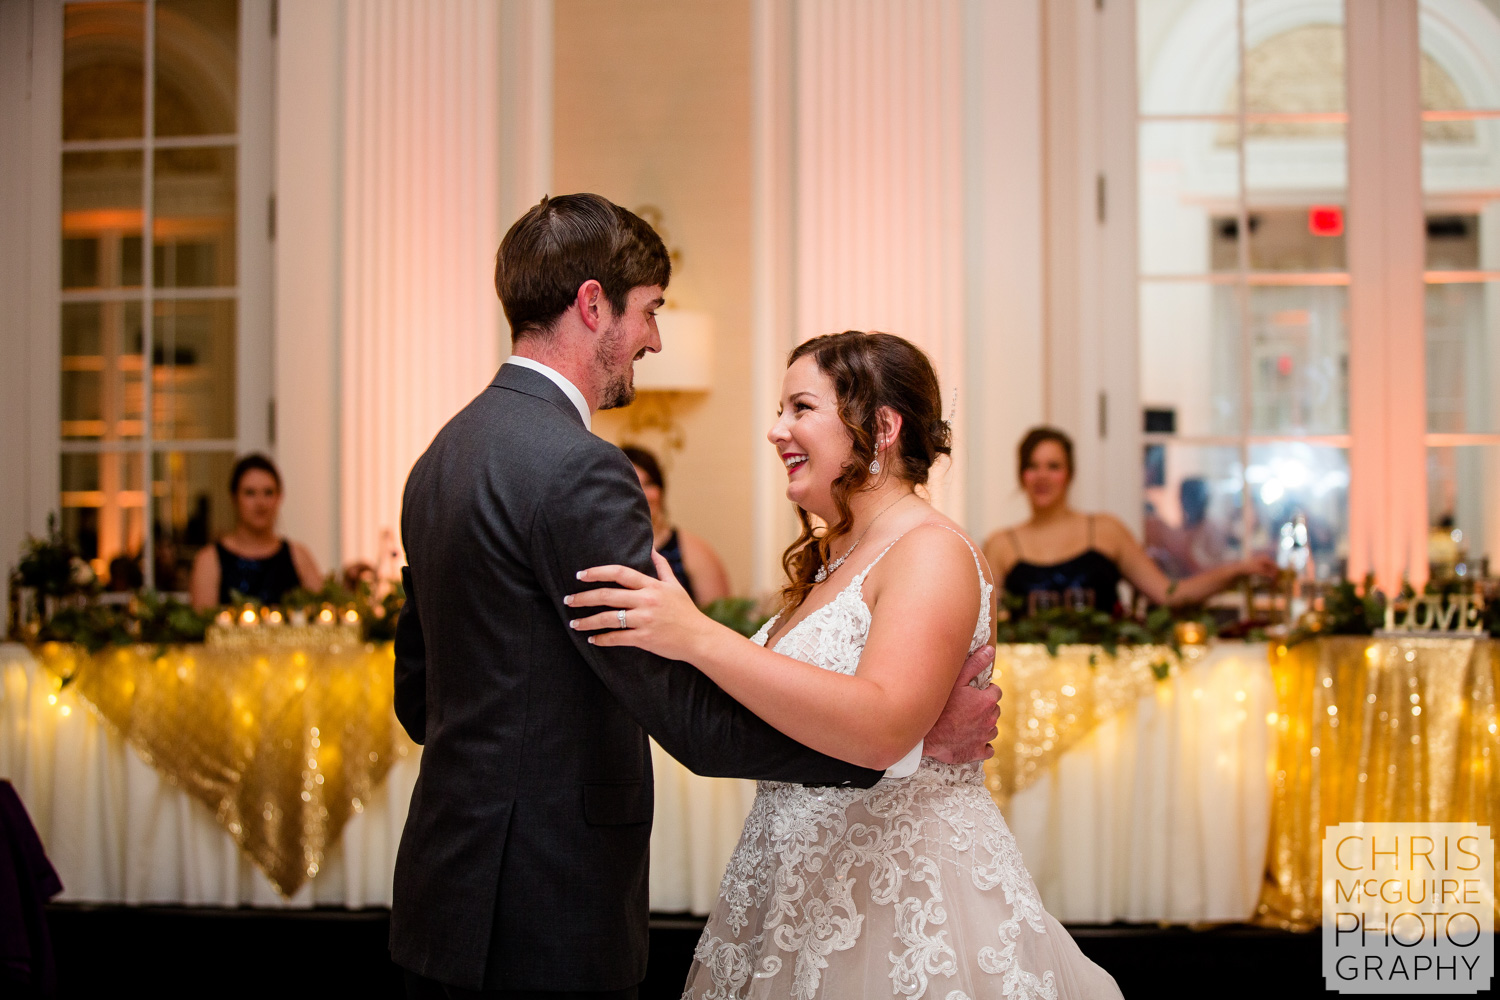 First Dance at Peoria Pere Marquette Wedding